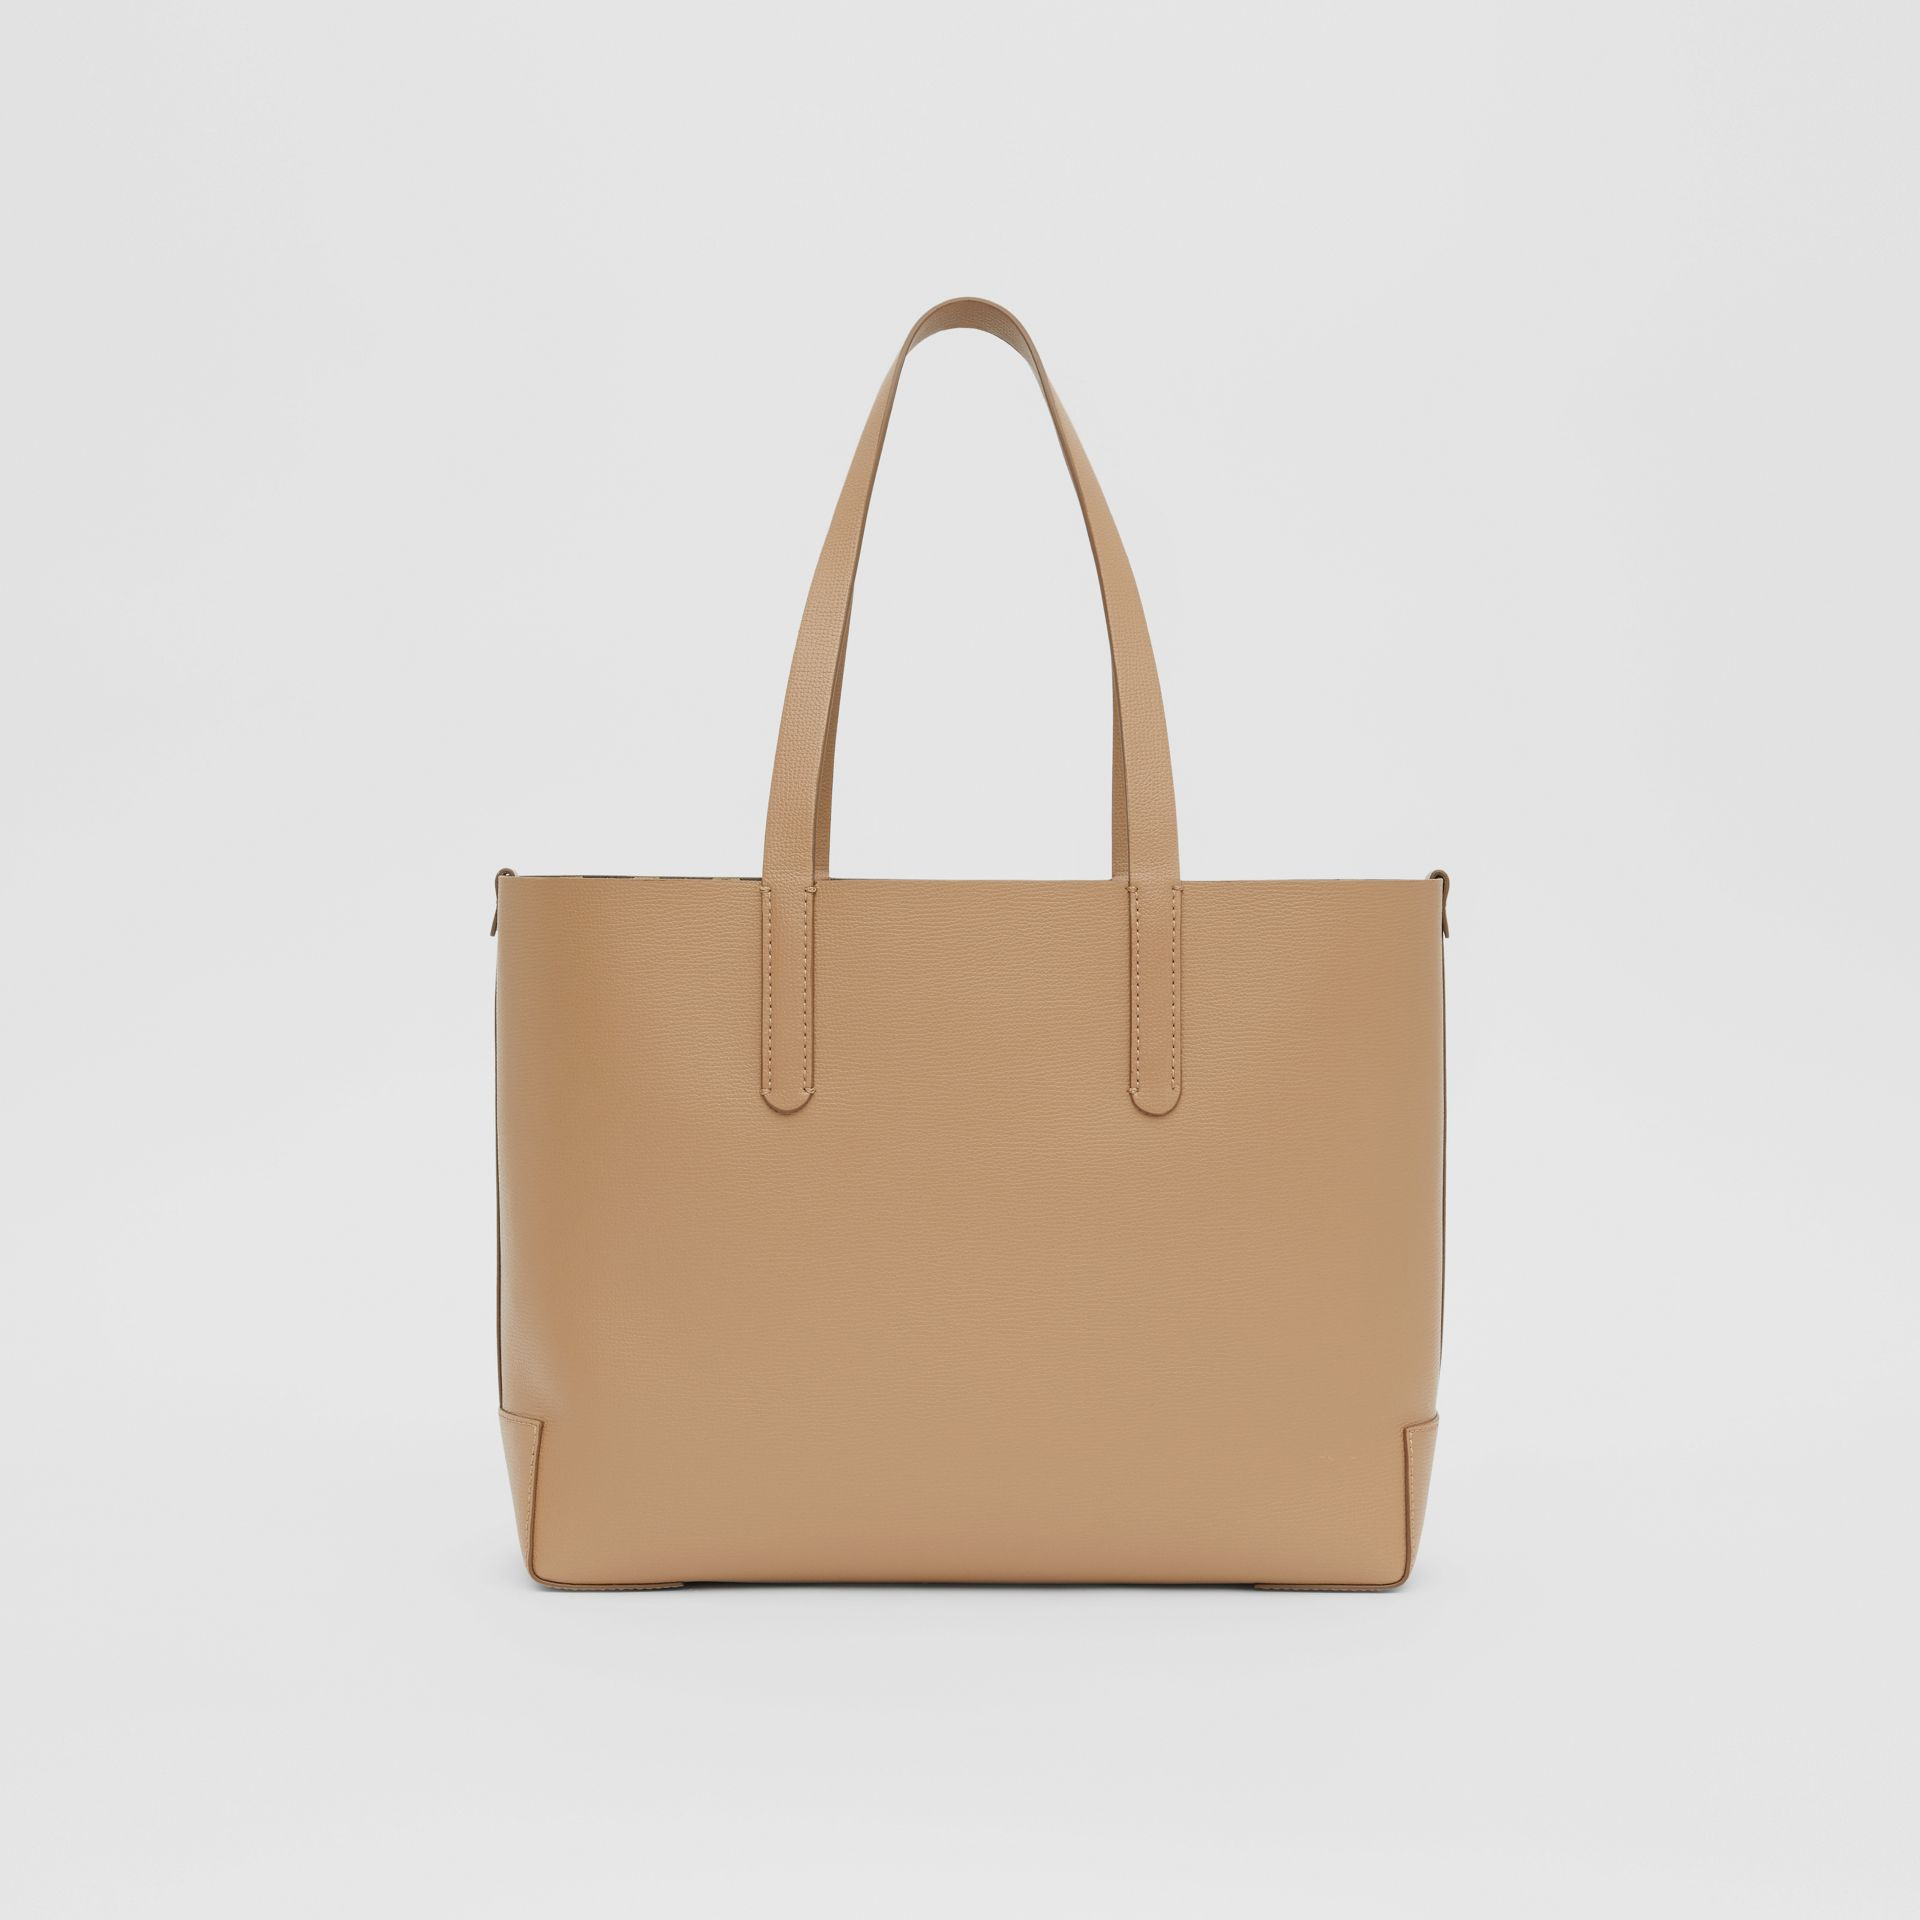 Embossed Monogram Motif Leather Tote in Camel - Women | Burberry - gallery image 9